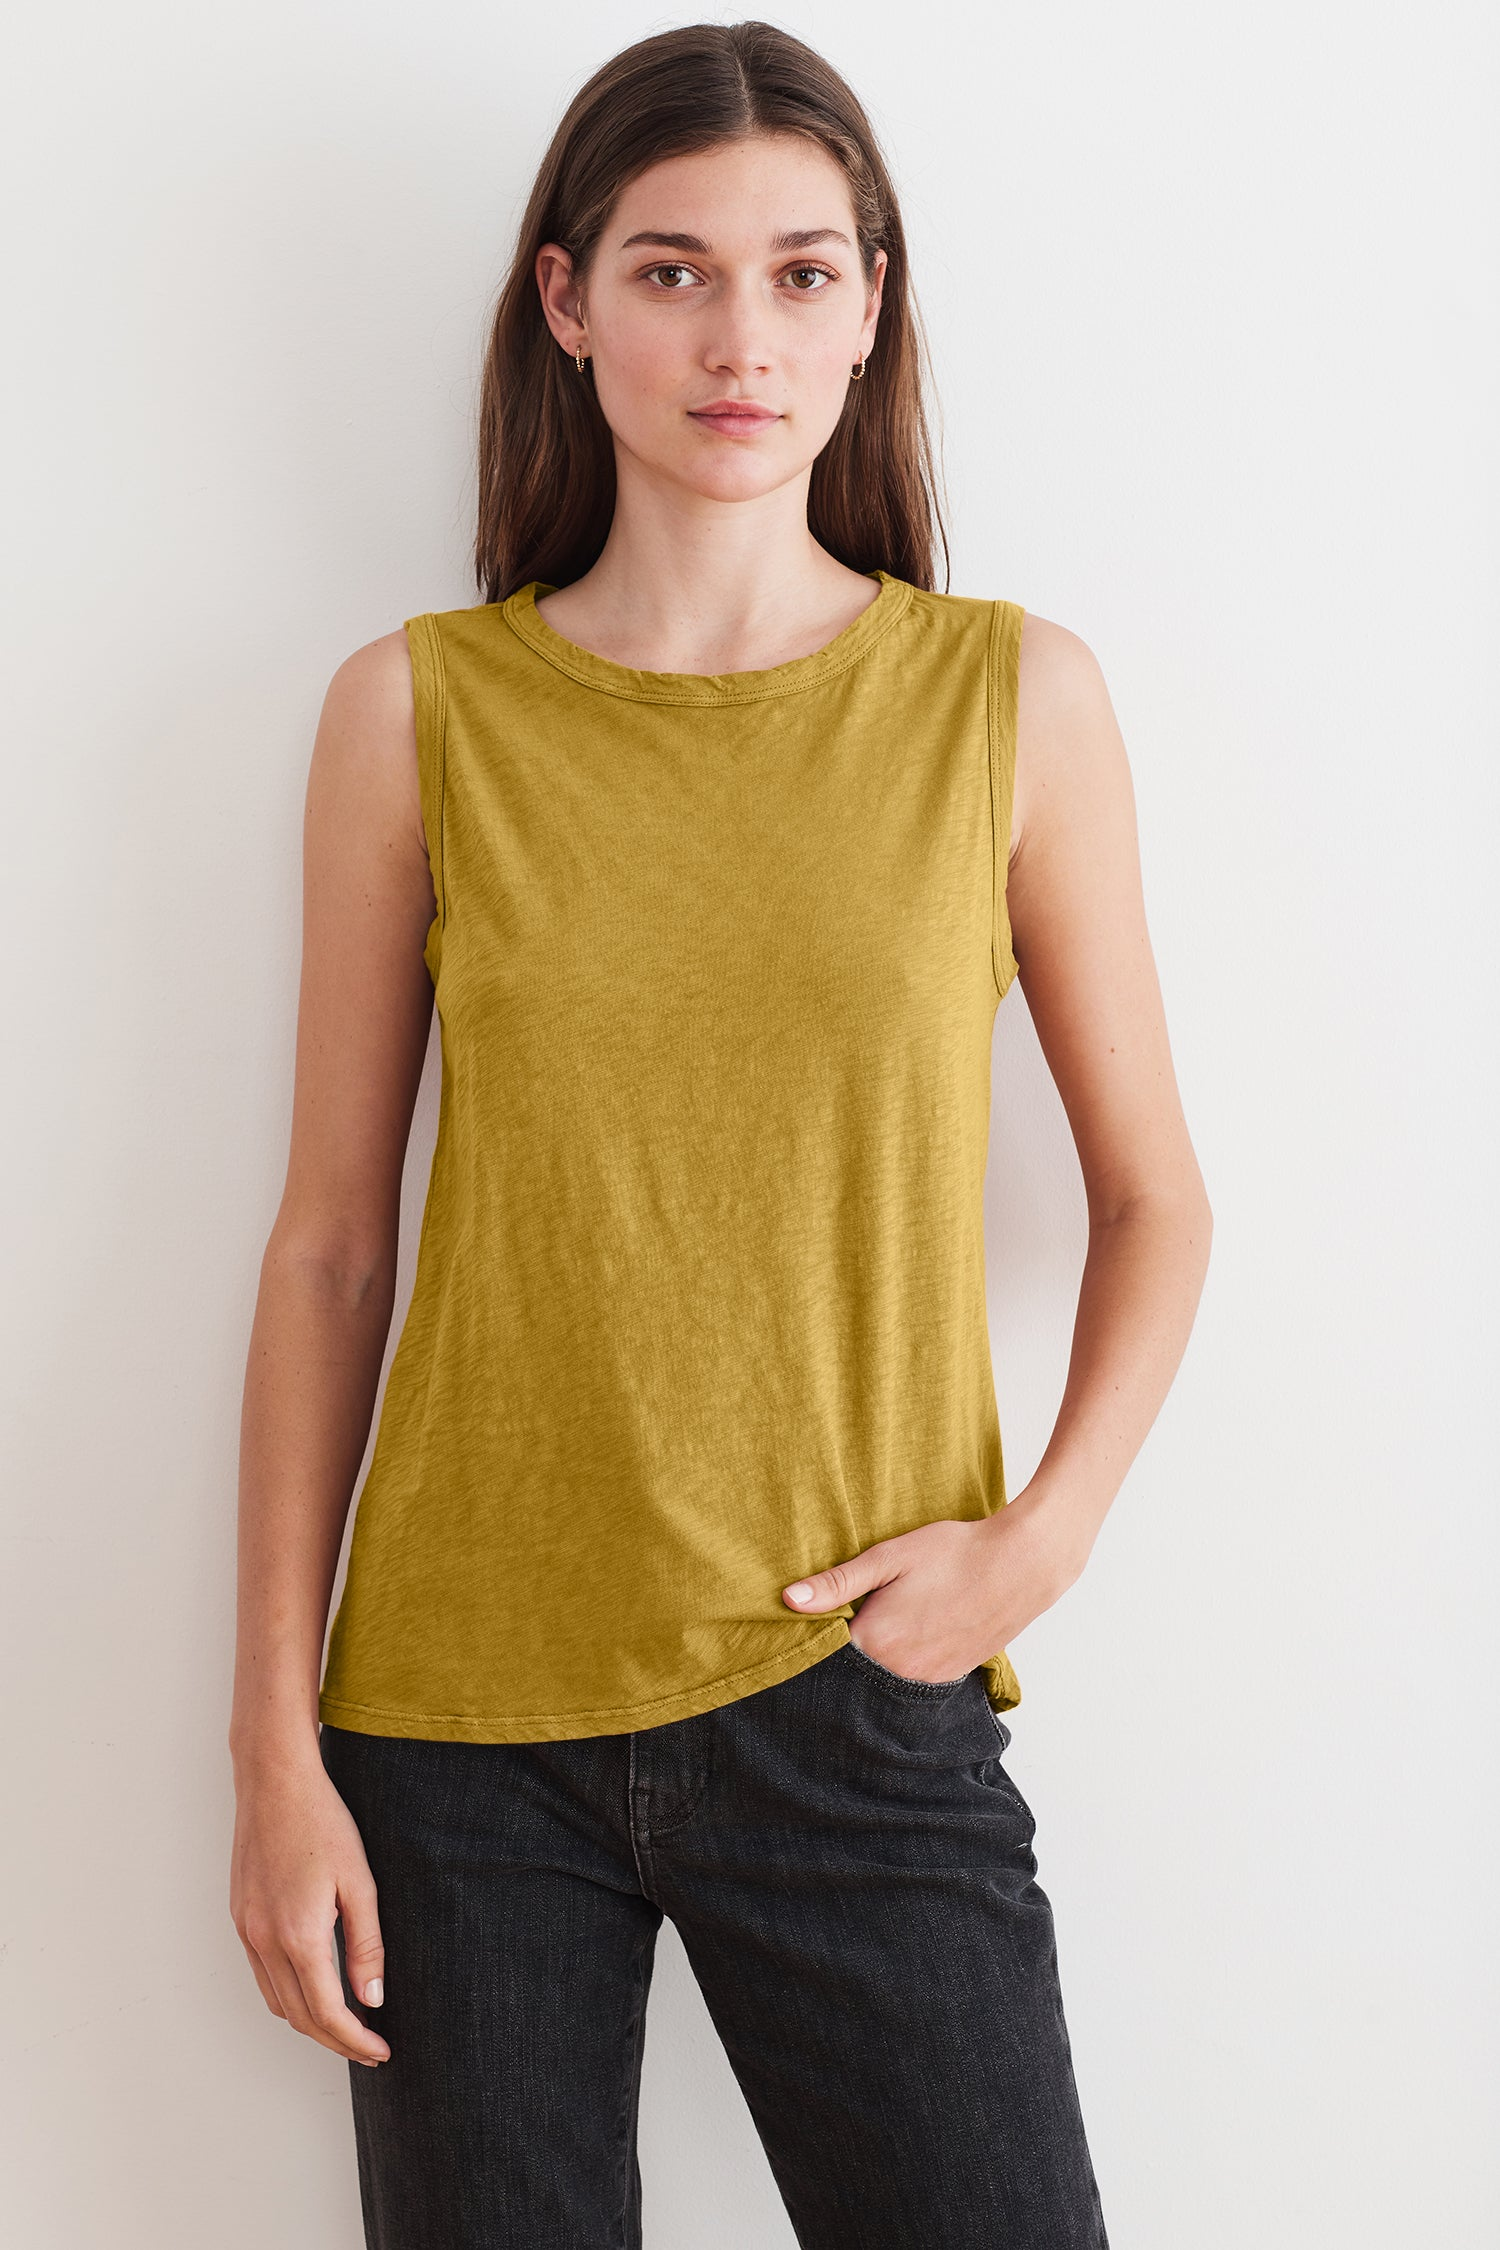 TAURUS COTTON SLUB TOP IN AMBER